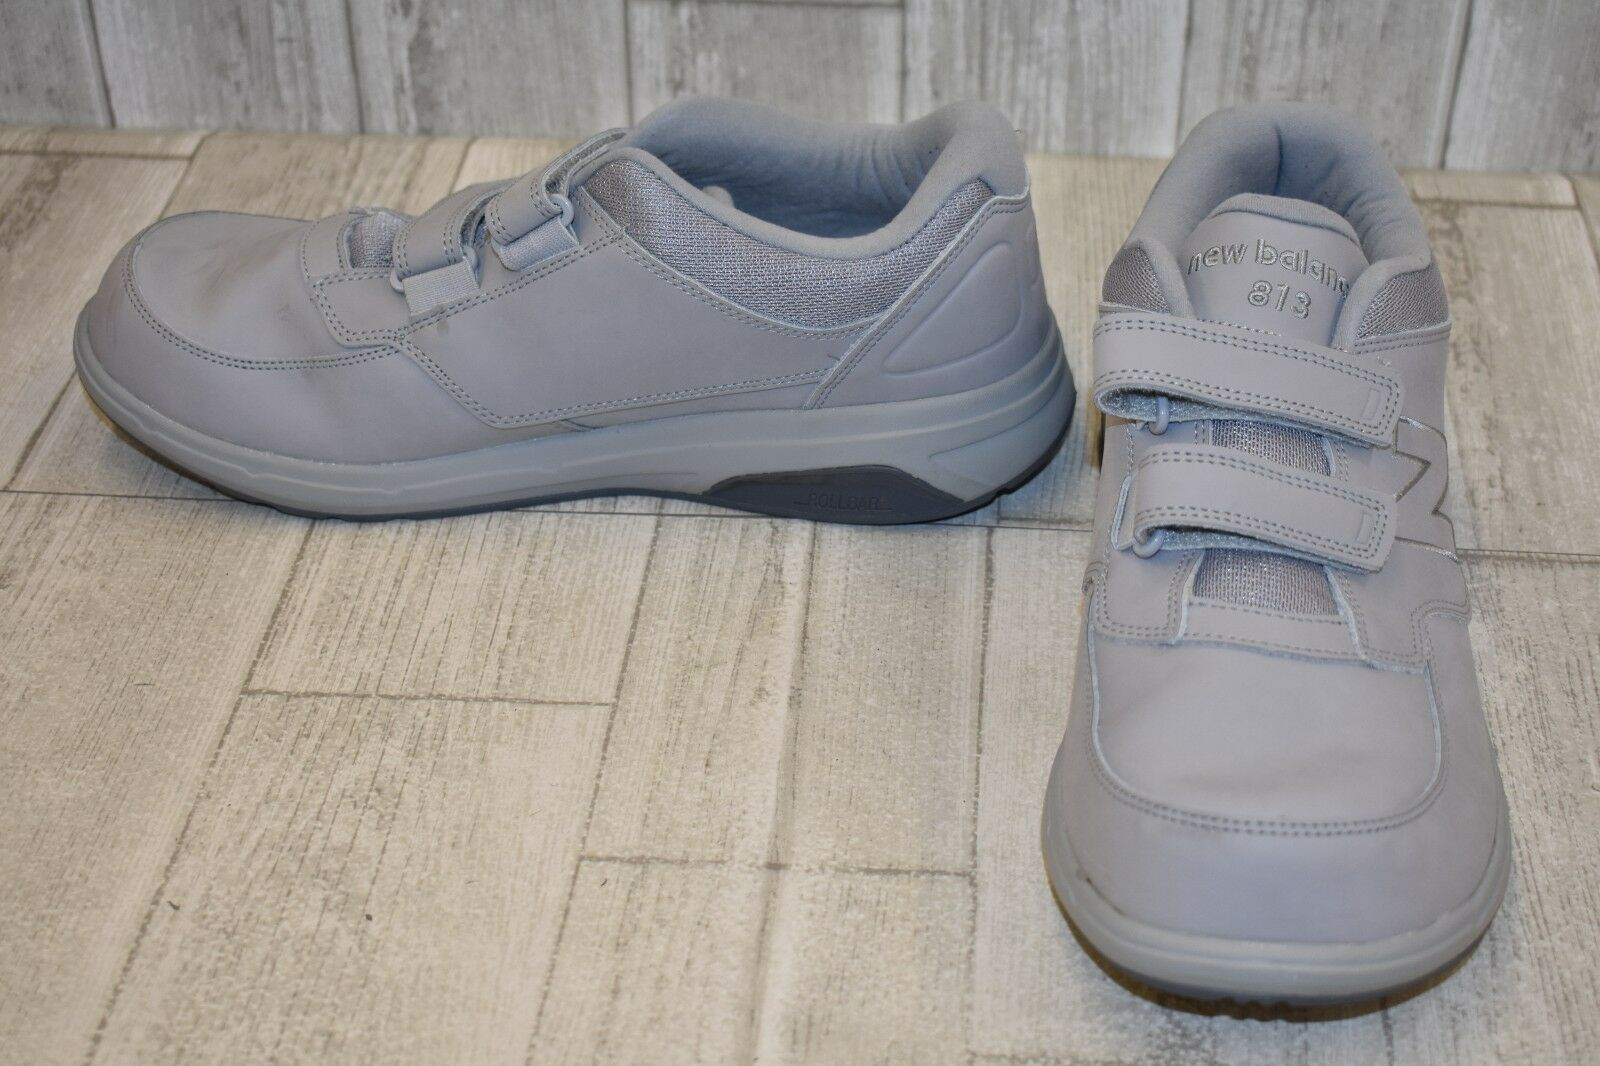 New Balance 873 Hook & Loop Walking shoes, Men's Size 11-2E, Grey